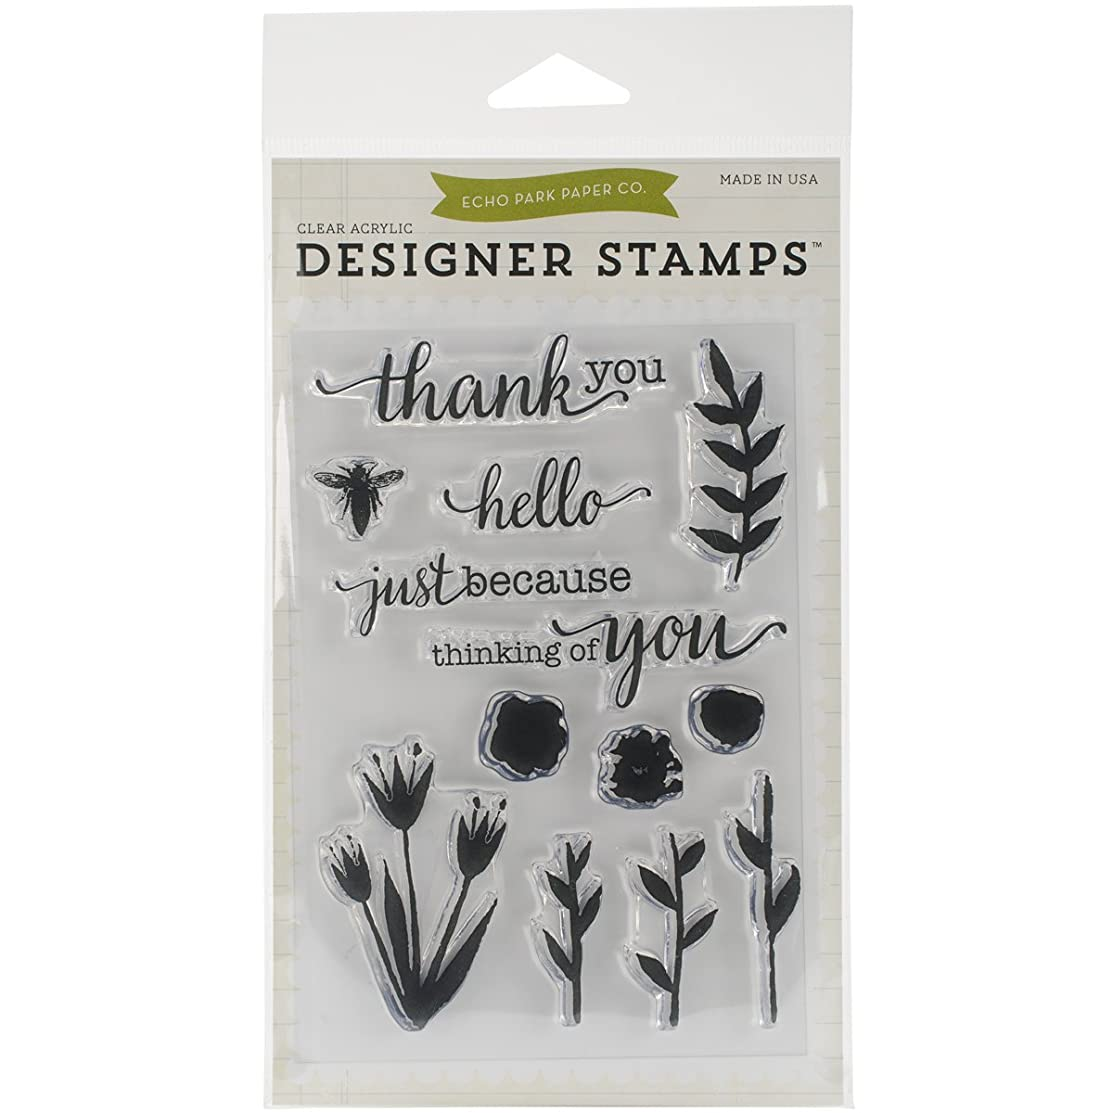 Echo Park Paper Company Watercolors Flowers Stamp, 4 x 6